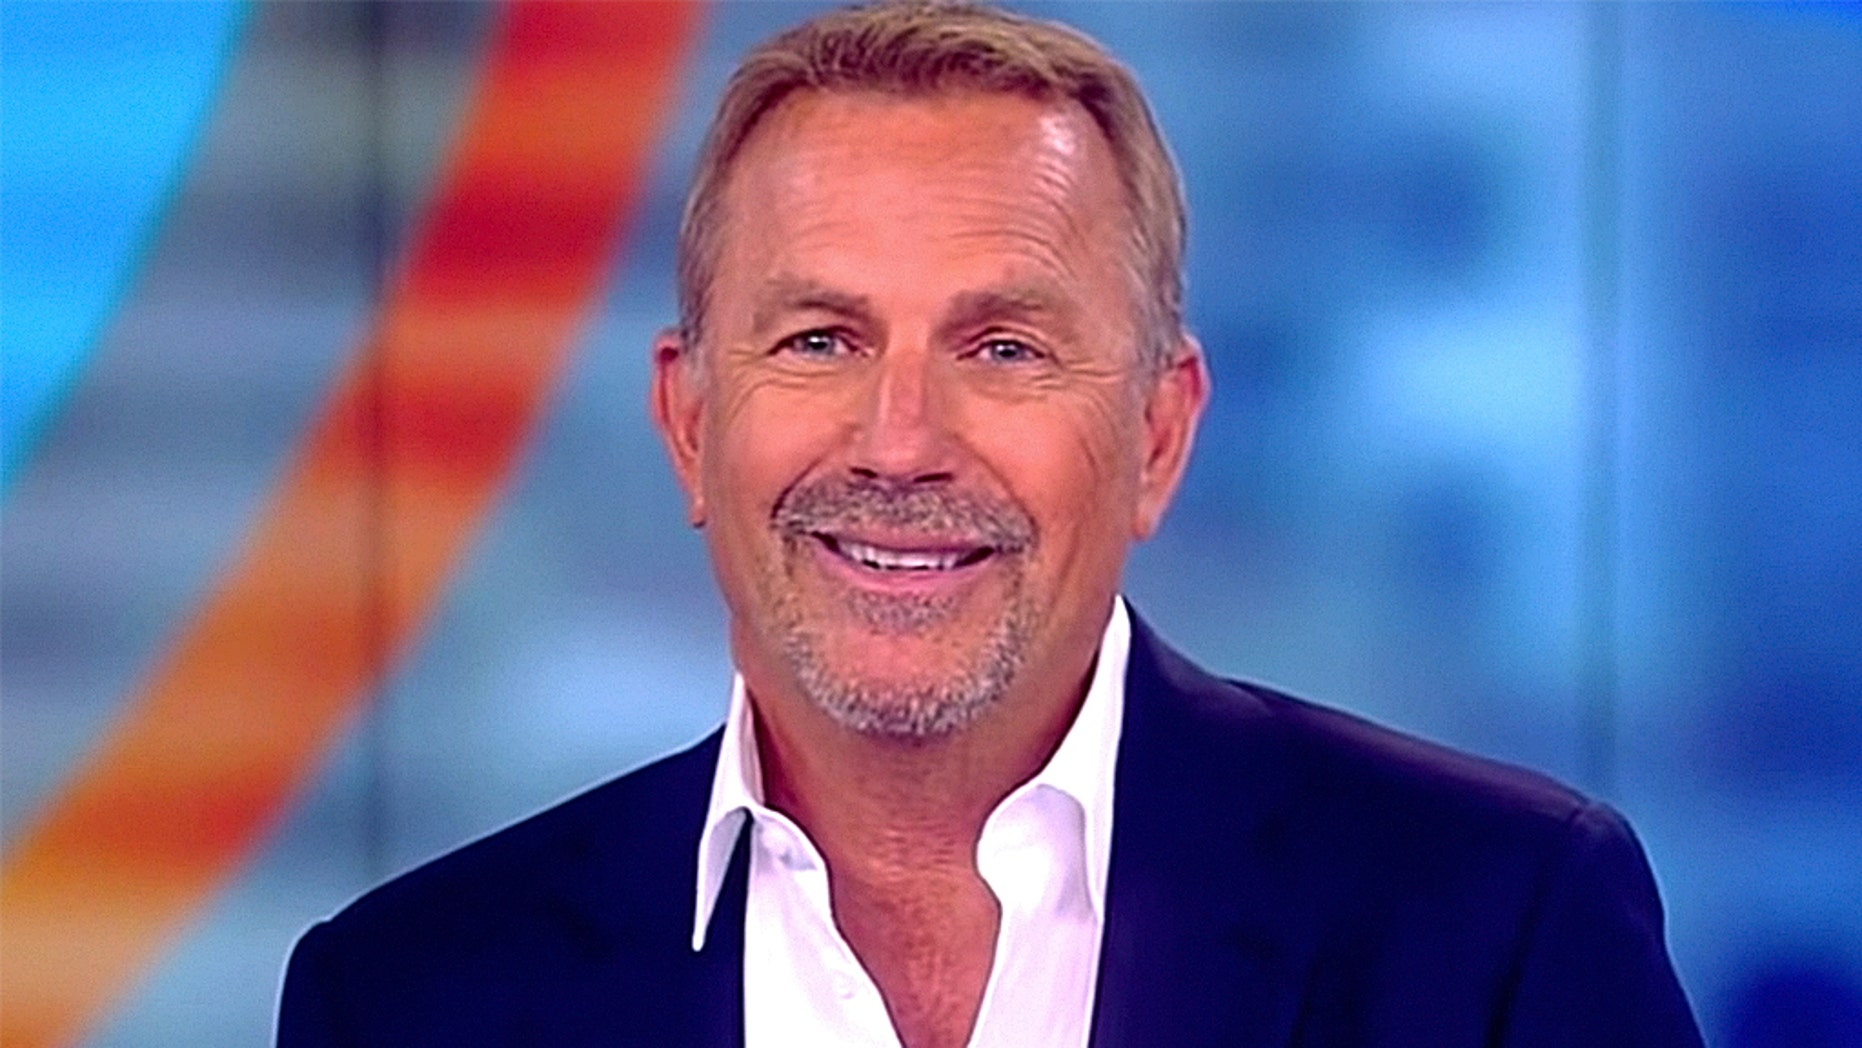 Kevin Costner criticized the Trump's administration's border policy that has reportedly separated nearly 2,000 immigrant children from their parents at the U.S.-Mexico border.